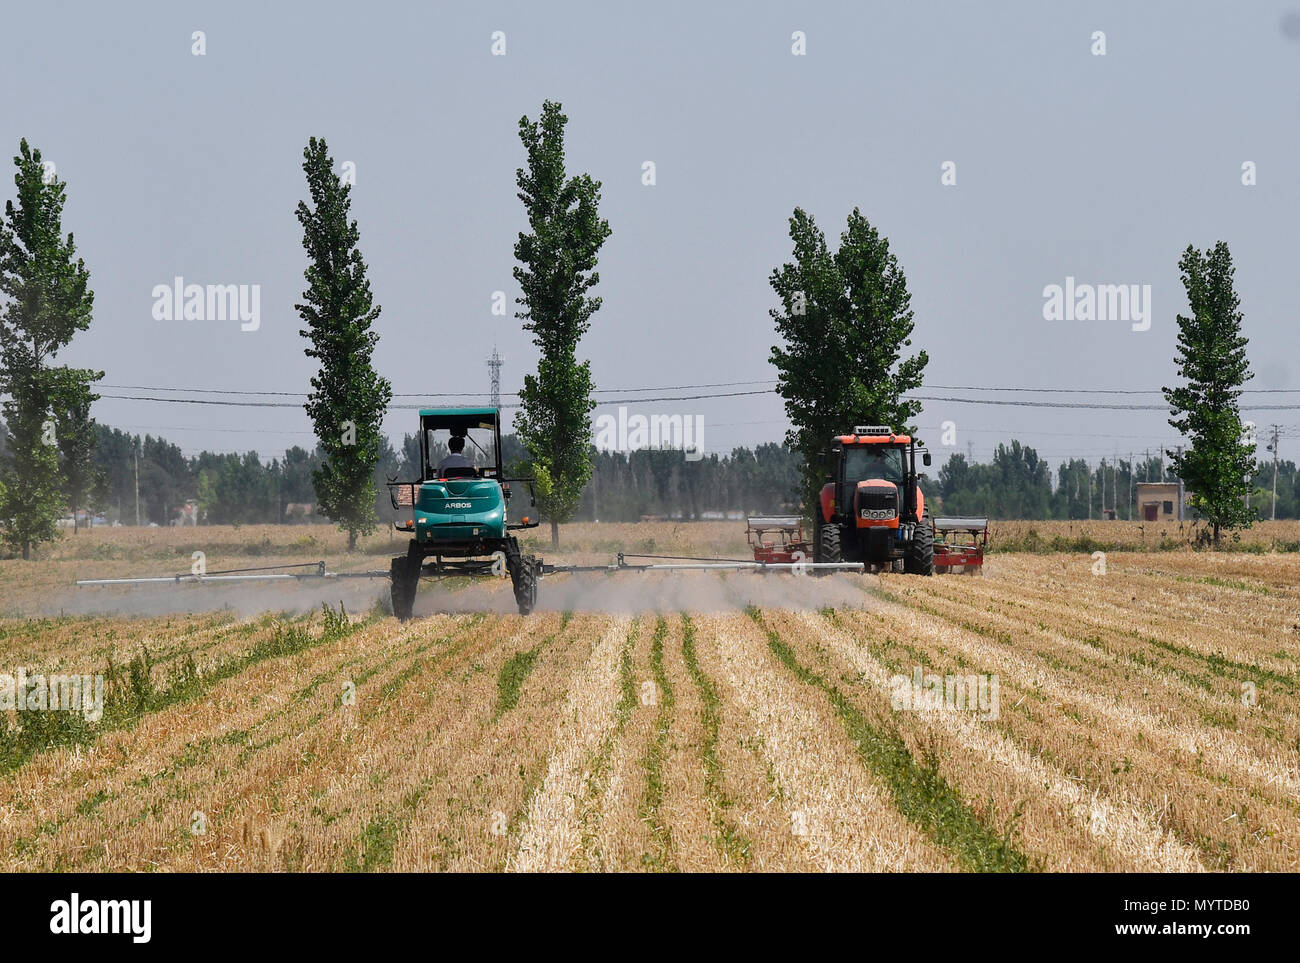 More Efficiently Stock Photos & More Efficiently Stock Images - Alamy